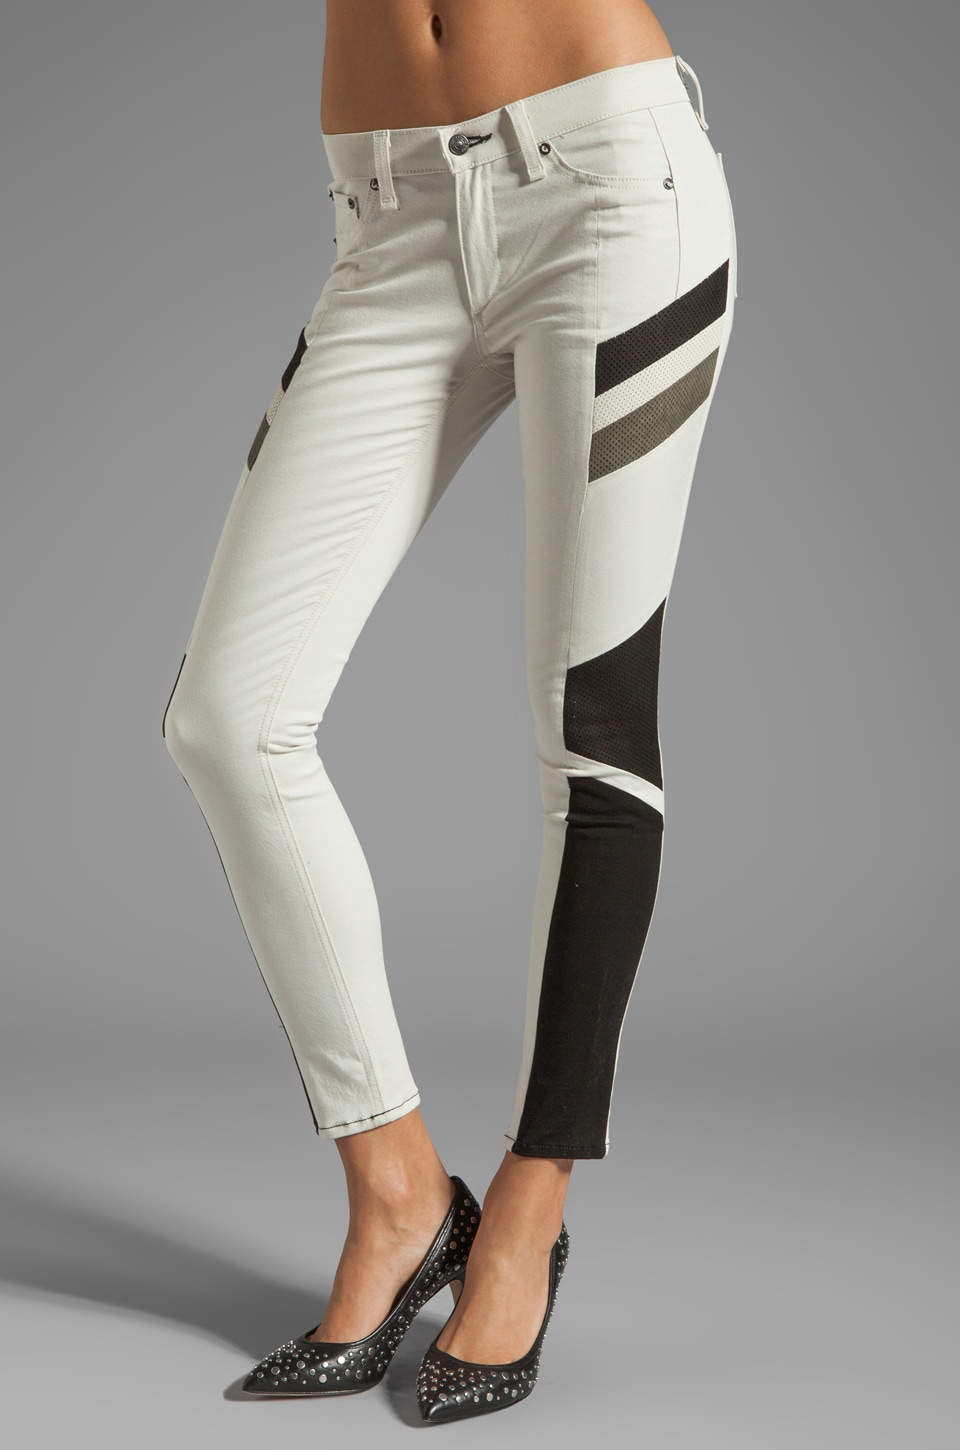 rag & bone/JEAN Halifox Legging in Winter White